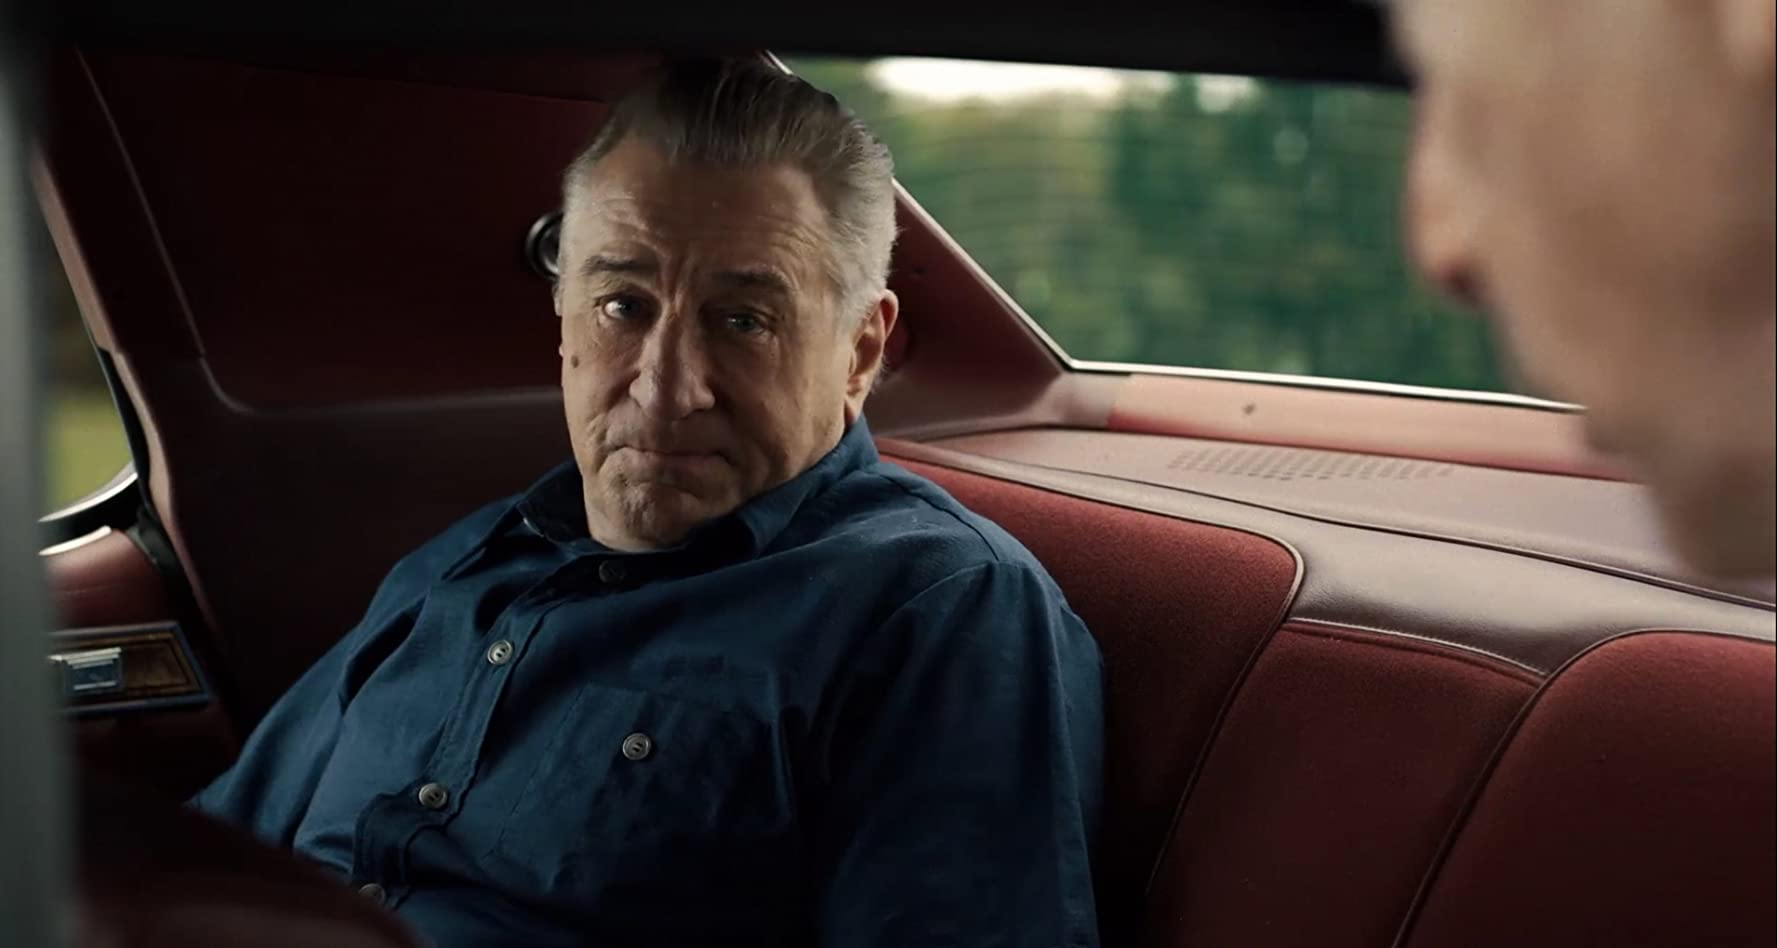 Robert De Niro in The Irishman (2019)